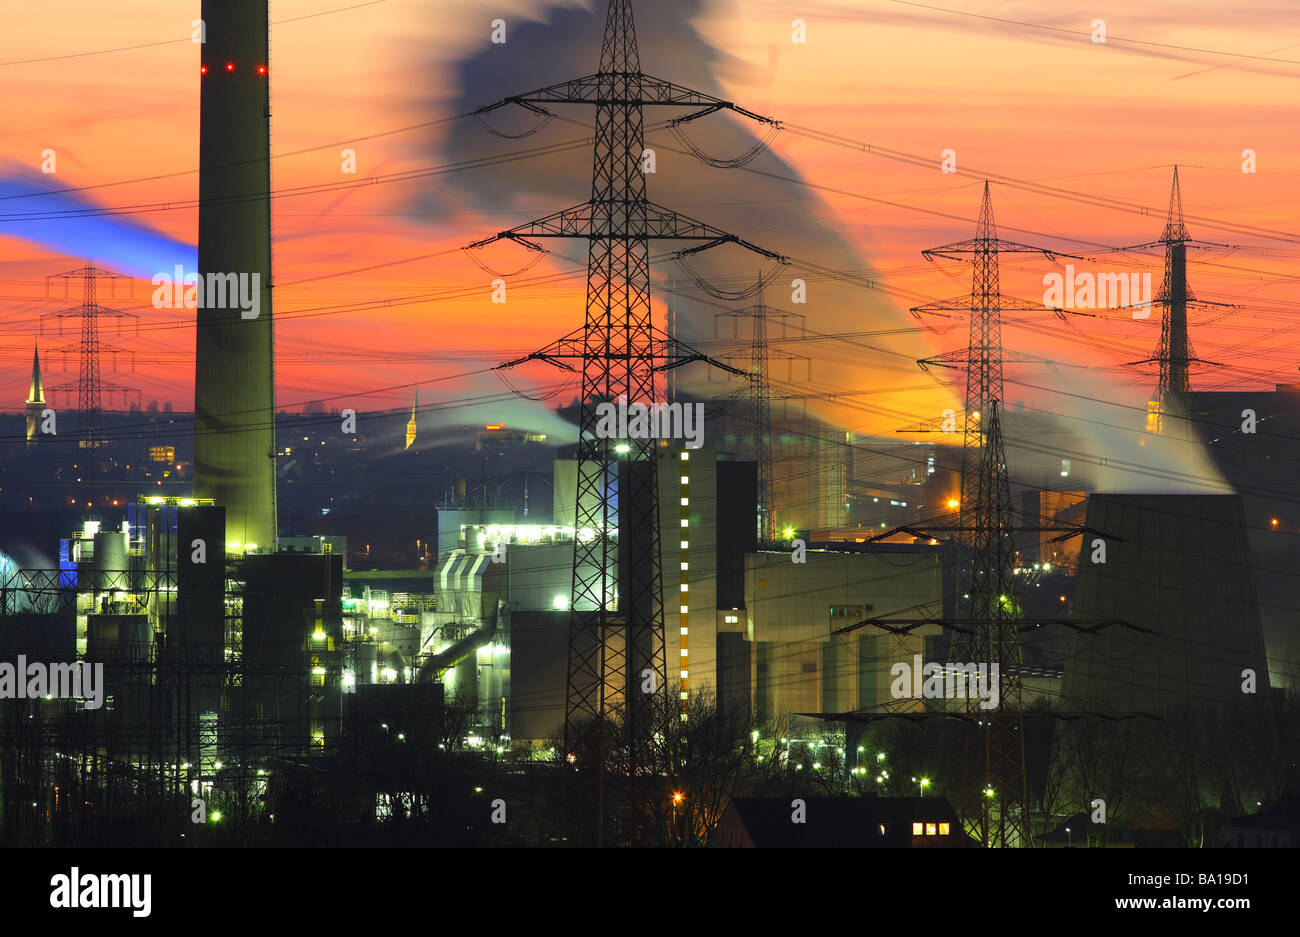 Waste incineration plant Essen Karnap of RWE Power AG Essen, Ruhr Area, Germany - Stock Image